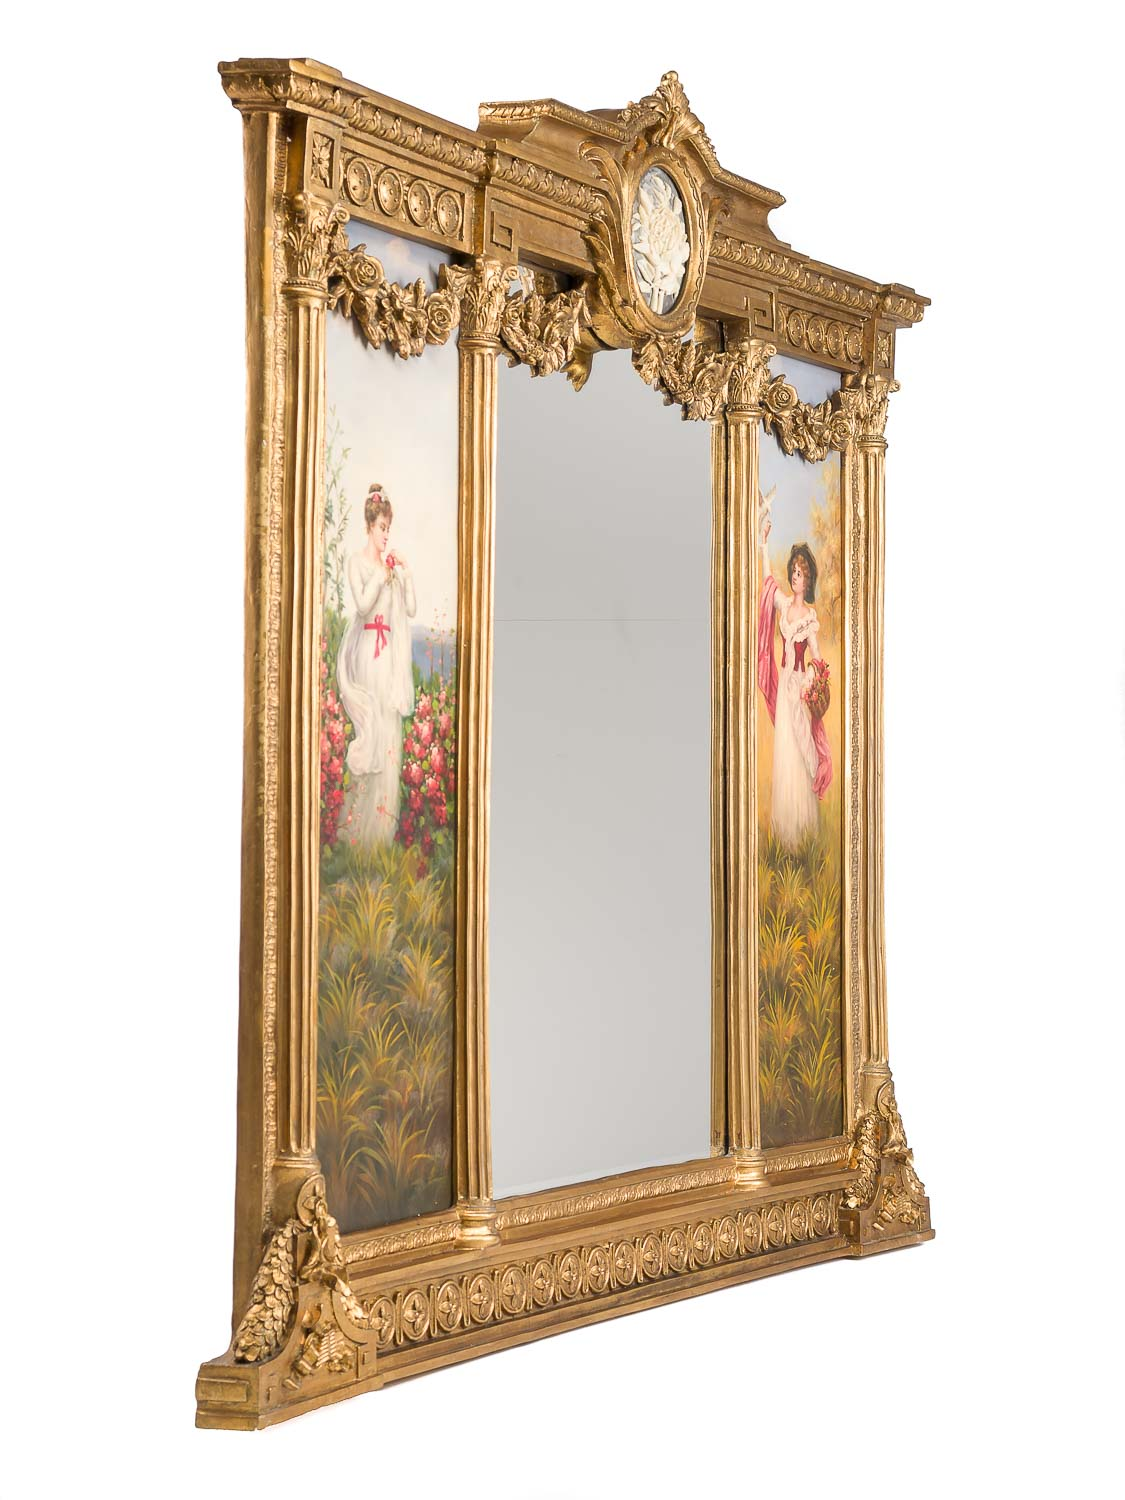 Spiegel Mit Installation Giant Mirror Baroque Antique Louis Xvi Style Painting